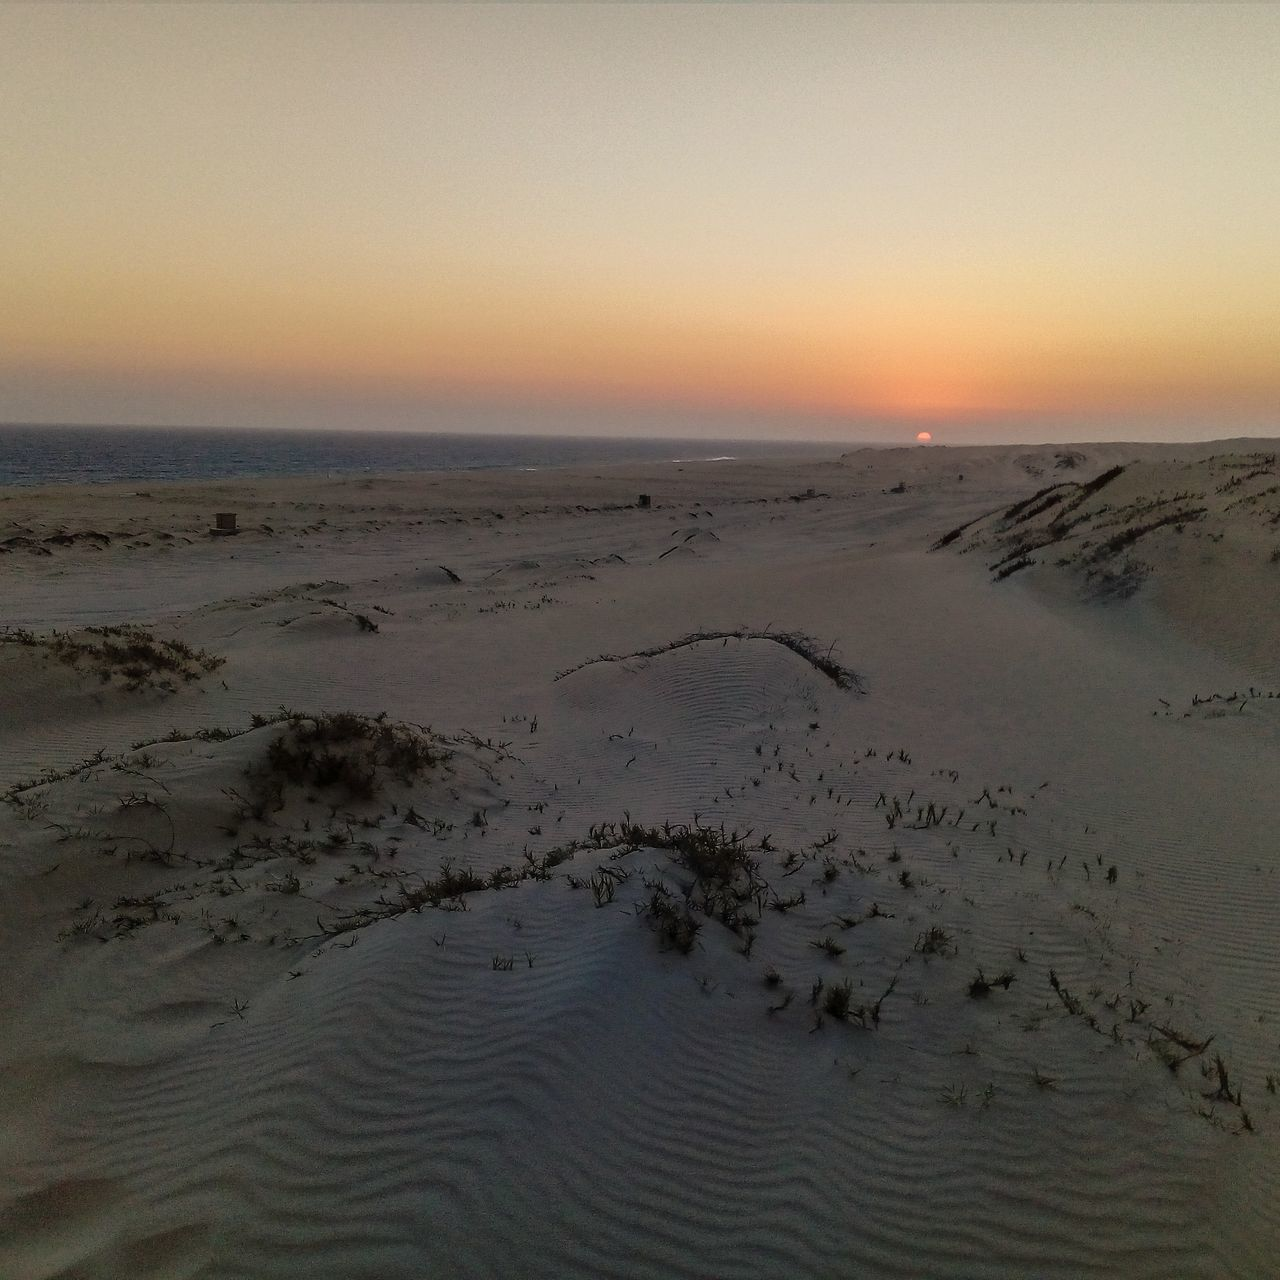 sunset, beauty in nature, nature, sea, scenics, tranquility, tranquil scene, sky, beach, sand, horizon over water, water, outdoors, no people, clear sky, sand dune, day